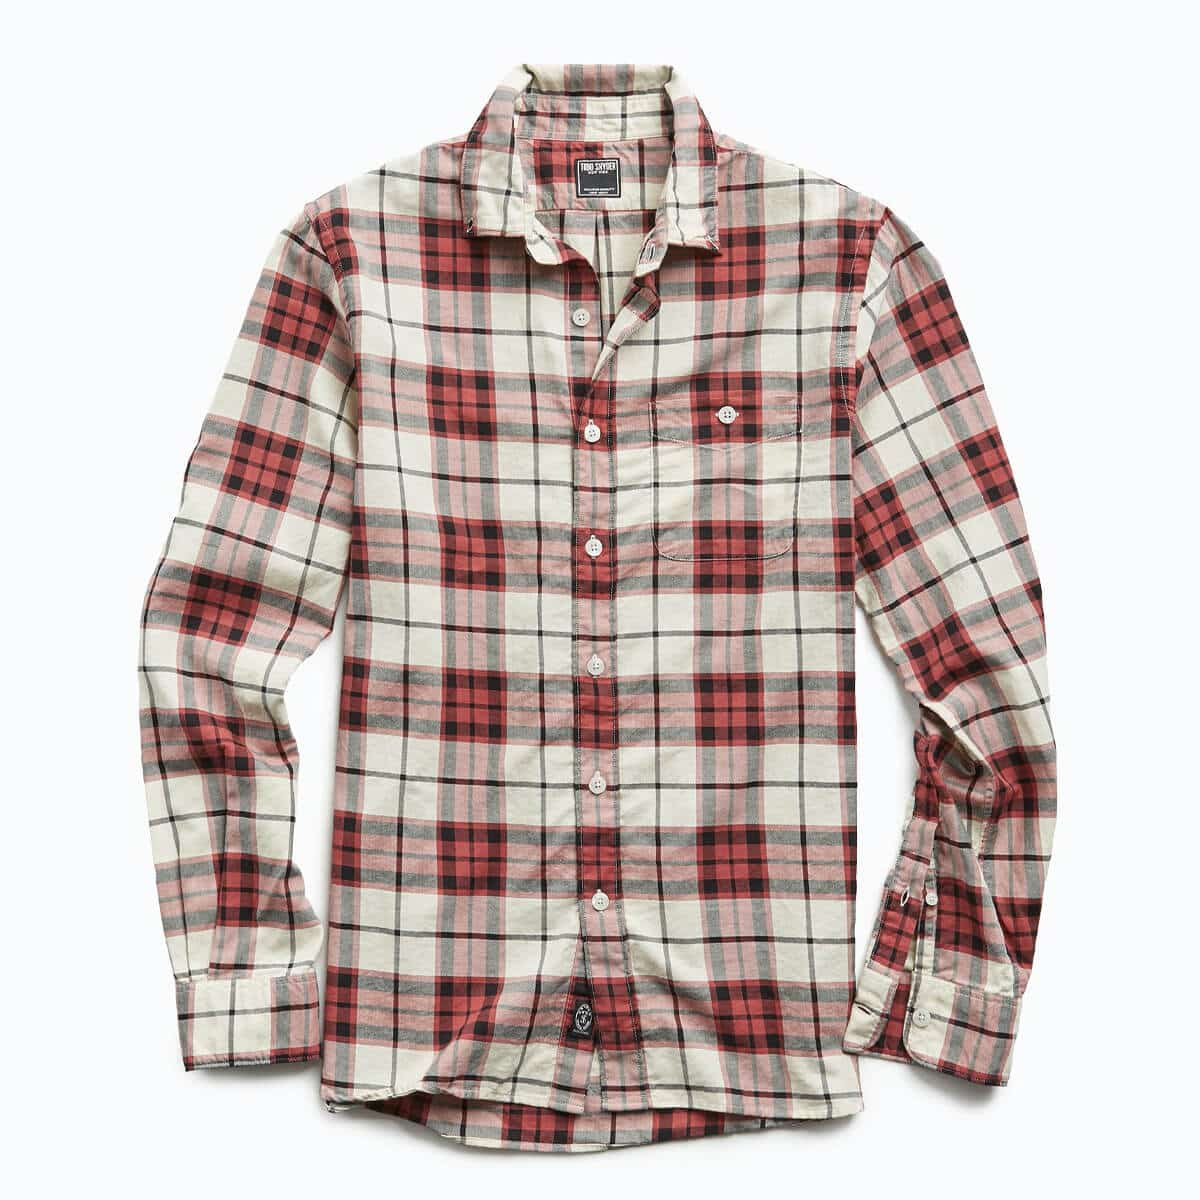 Todd Snyder - Portuguese Red Plaid Flannel Shirt